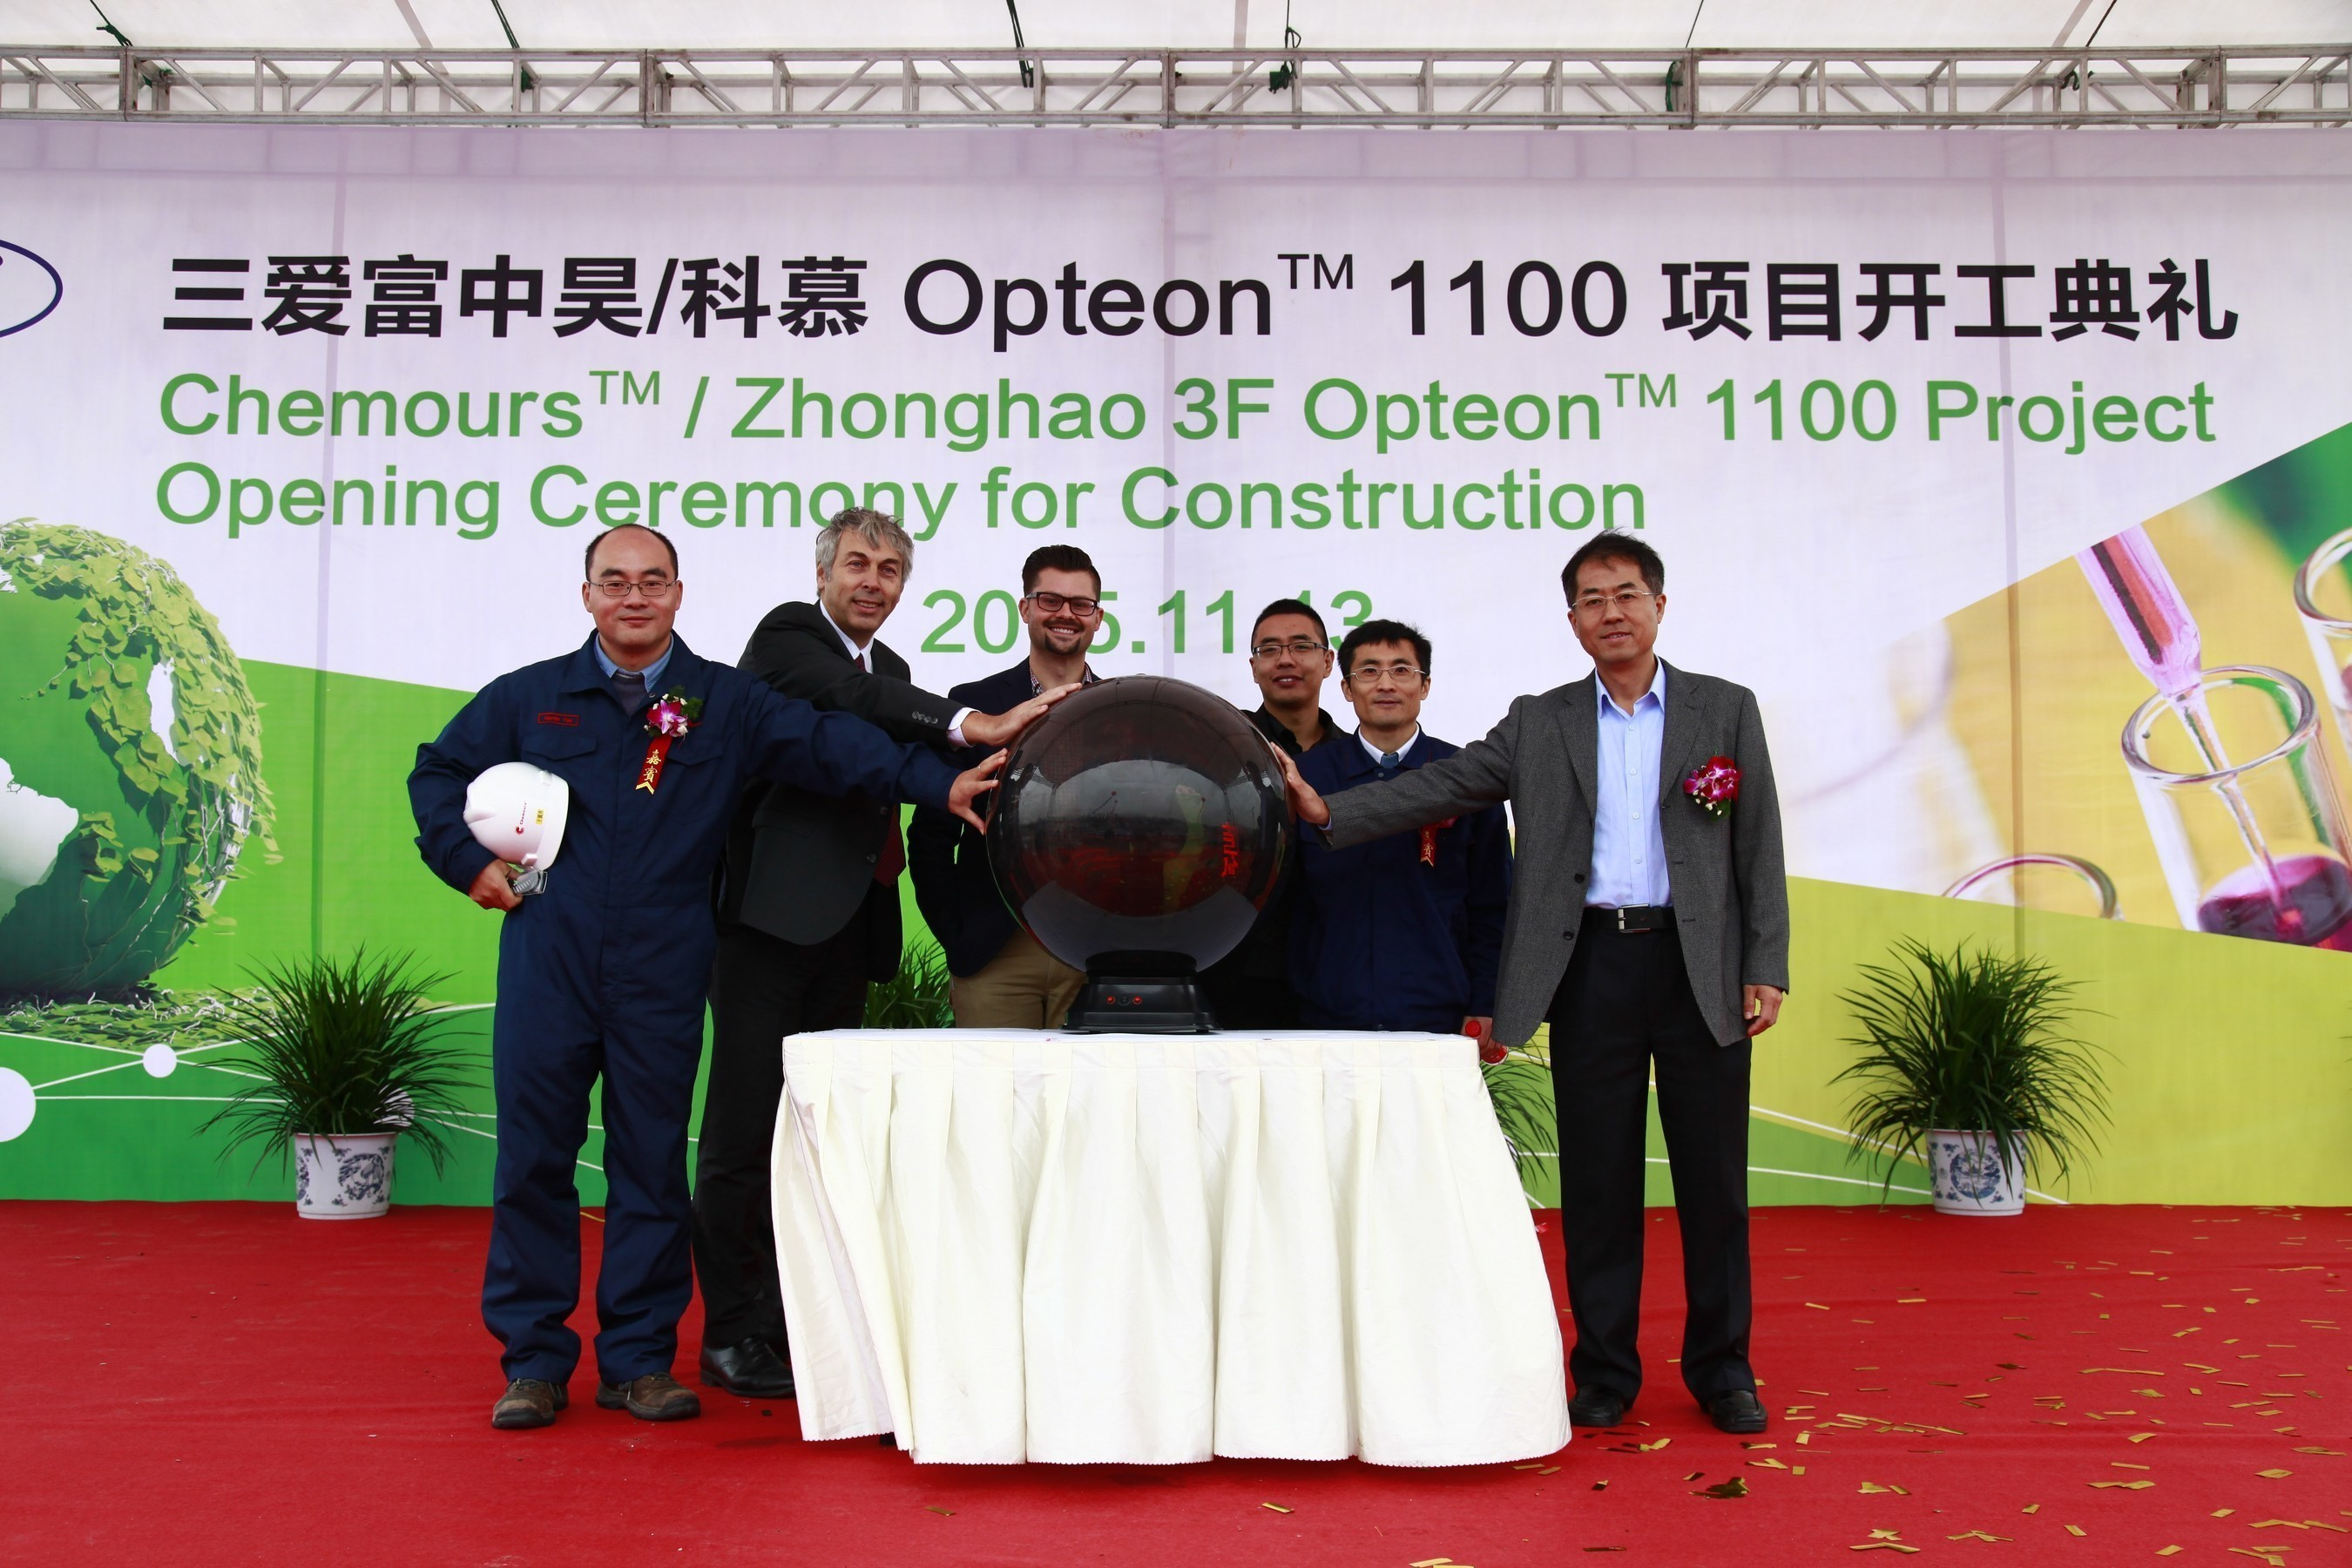 Representatives of The Chemours Company and Changshu 3F Zhonghao New Chemical Materials Co. Ltd. celebrate groundbreaking for the world's first full-scale production facility for HFO-1336mzz in Changshu, Jiangsu Province, China. This site is expected to begin production in mid-year 2017 new Formacel(TM) foam expansion agents and Opteon(TM) refrigerants, which offer better environmental sustainability and increased energy efficiency. The orb at the center symbolizes the parties joining to officially kickoff construction.